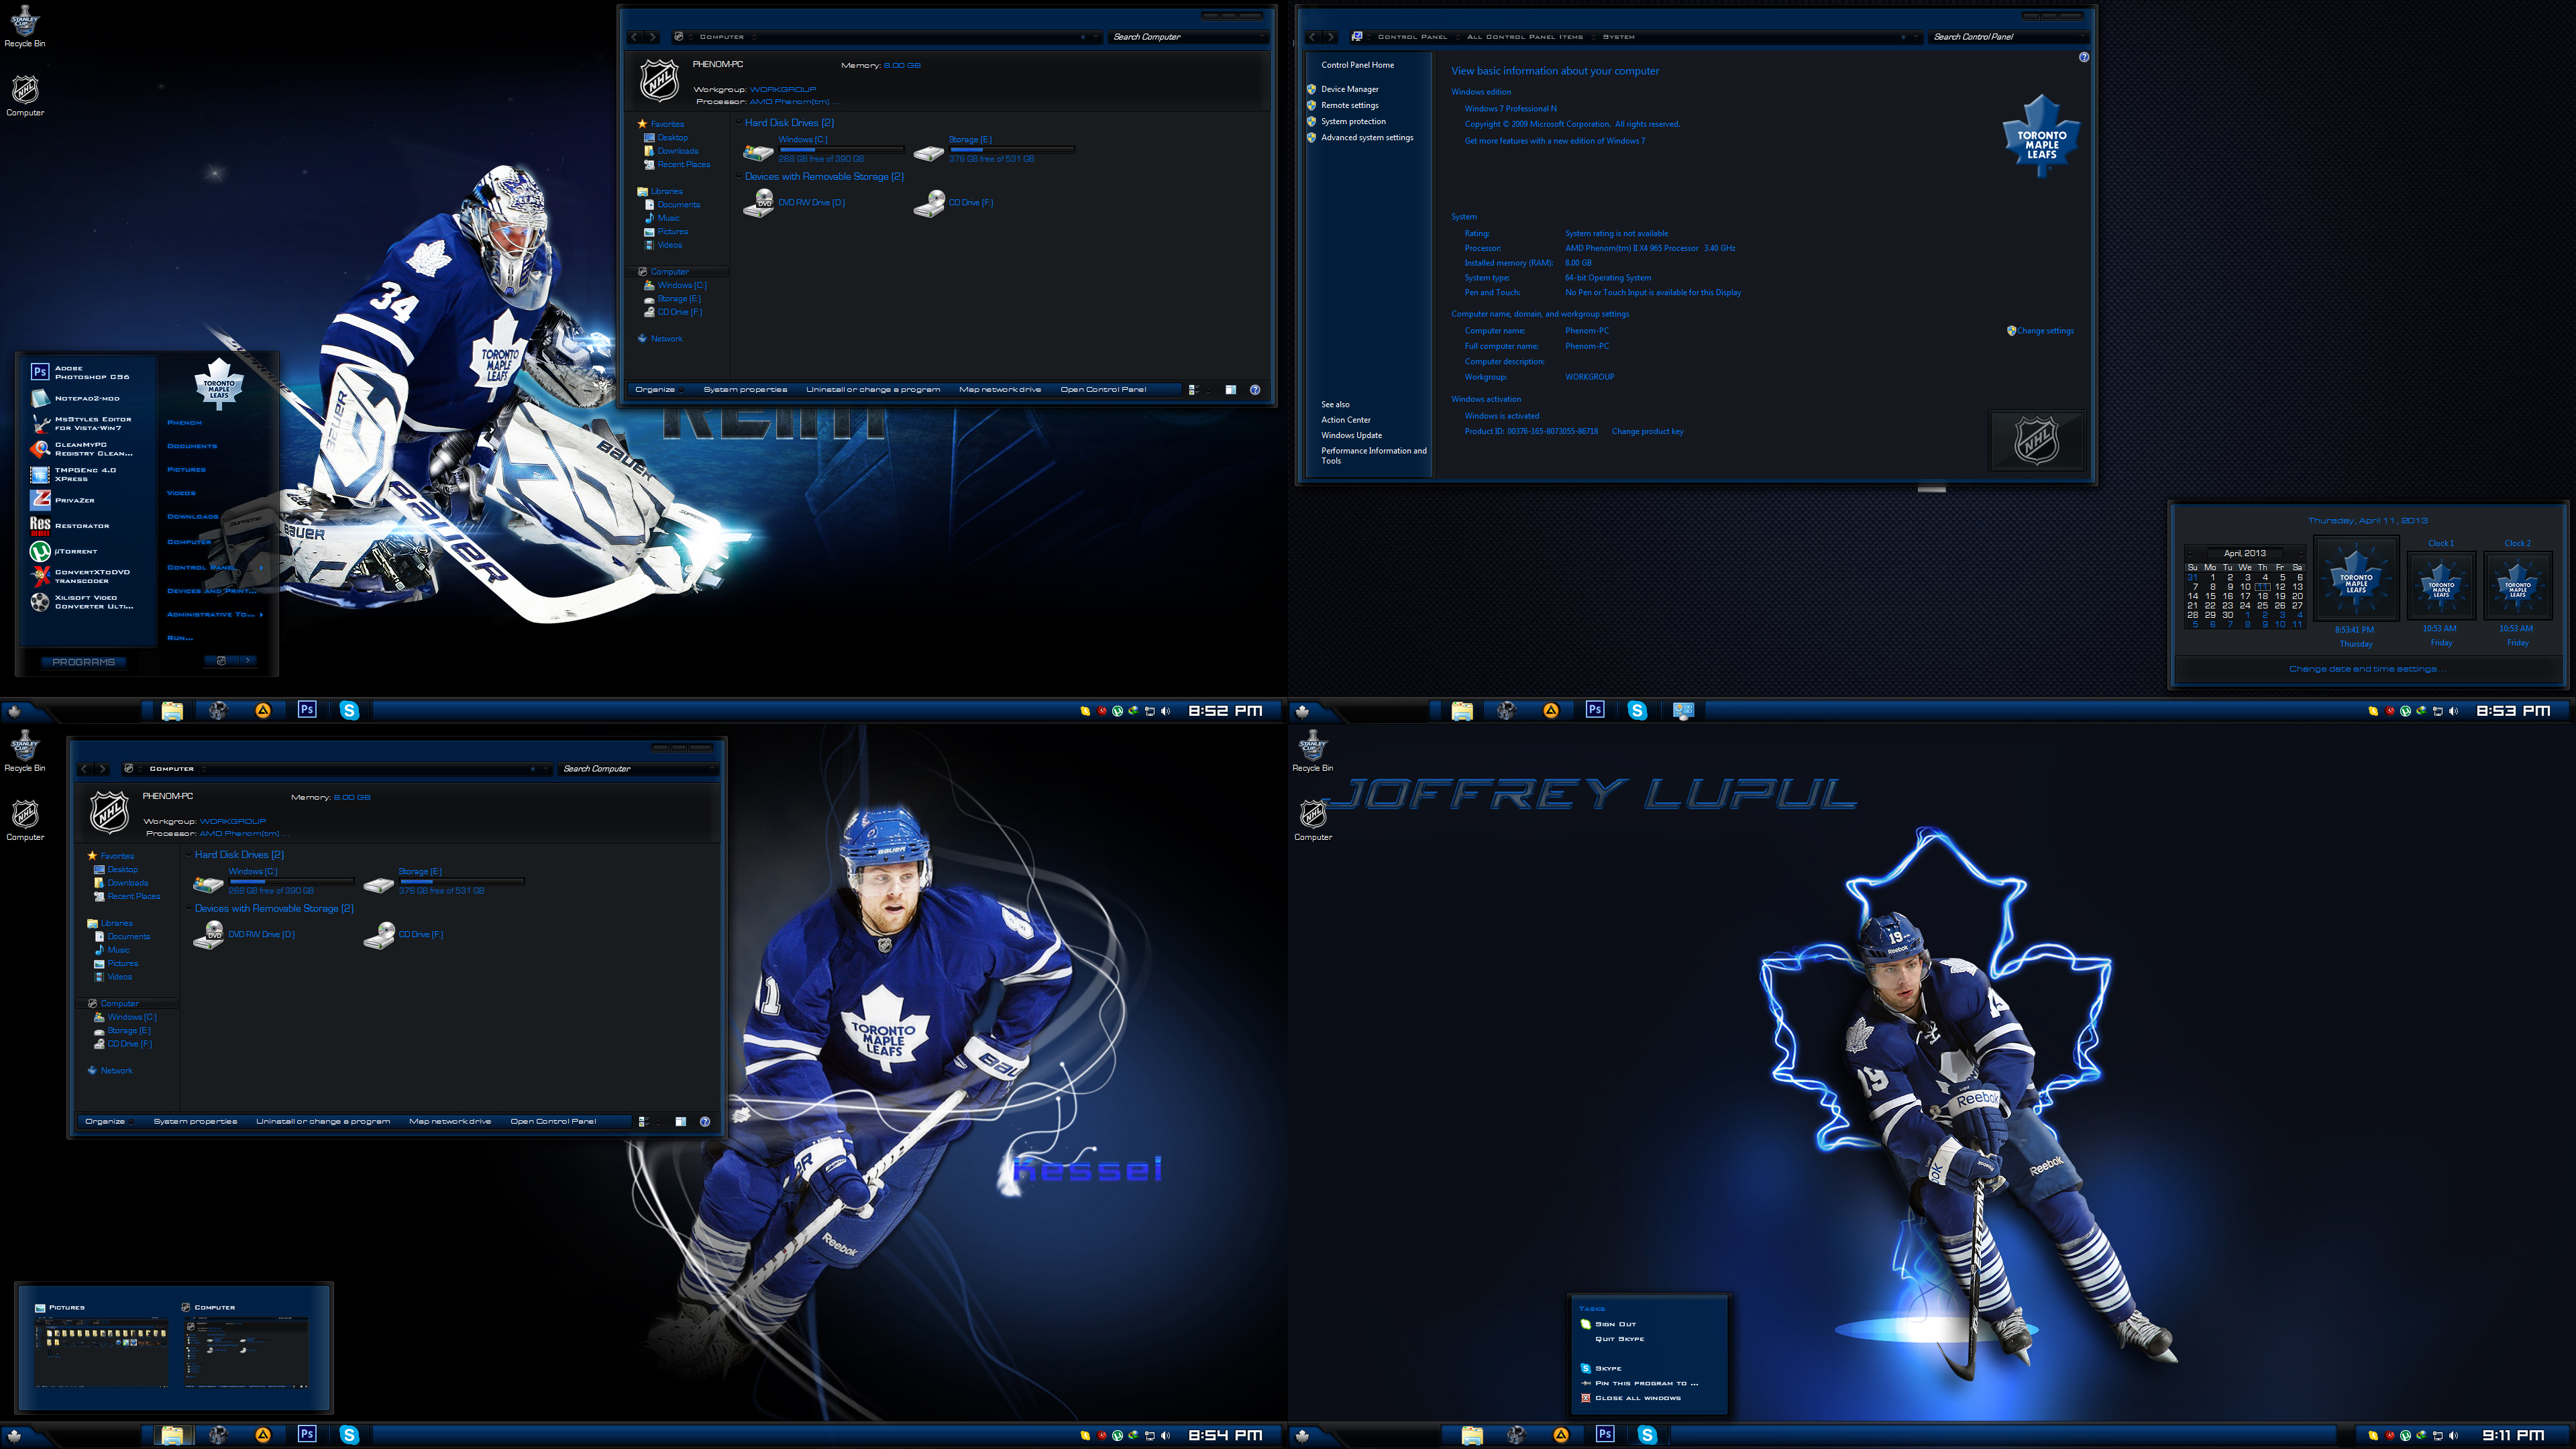 [����] Toronto Maple Leafs [ Windows 7 / 2013]